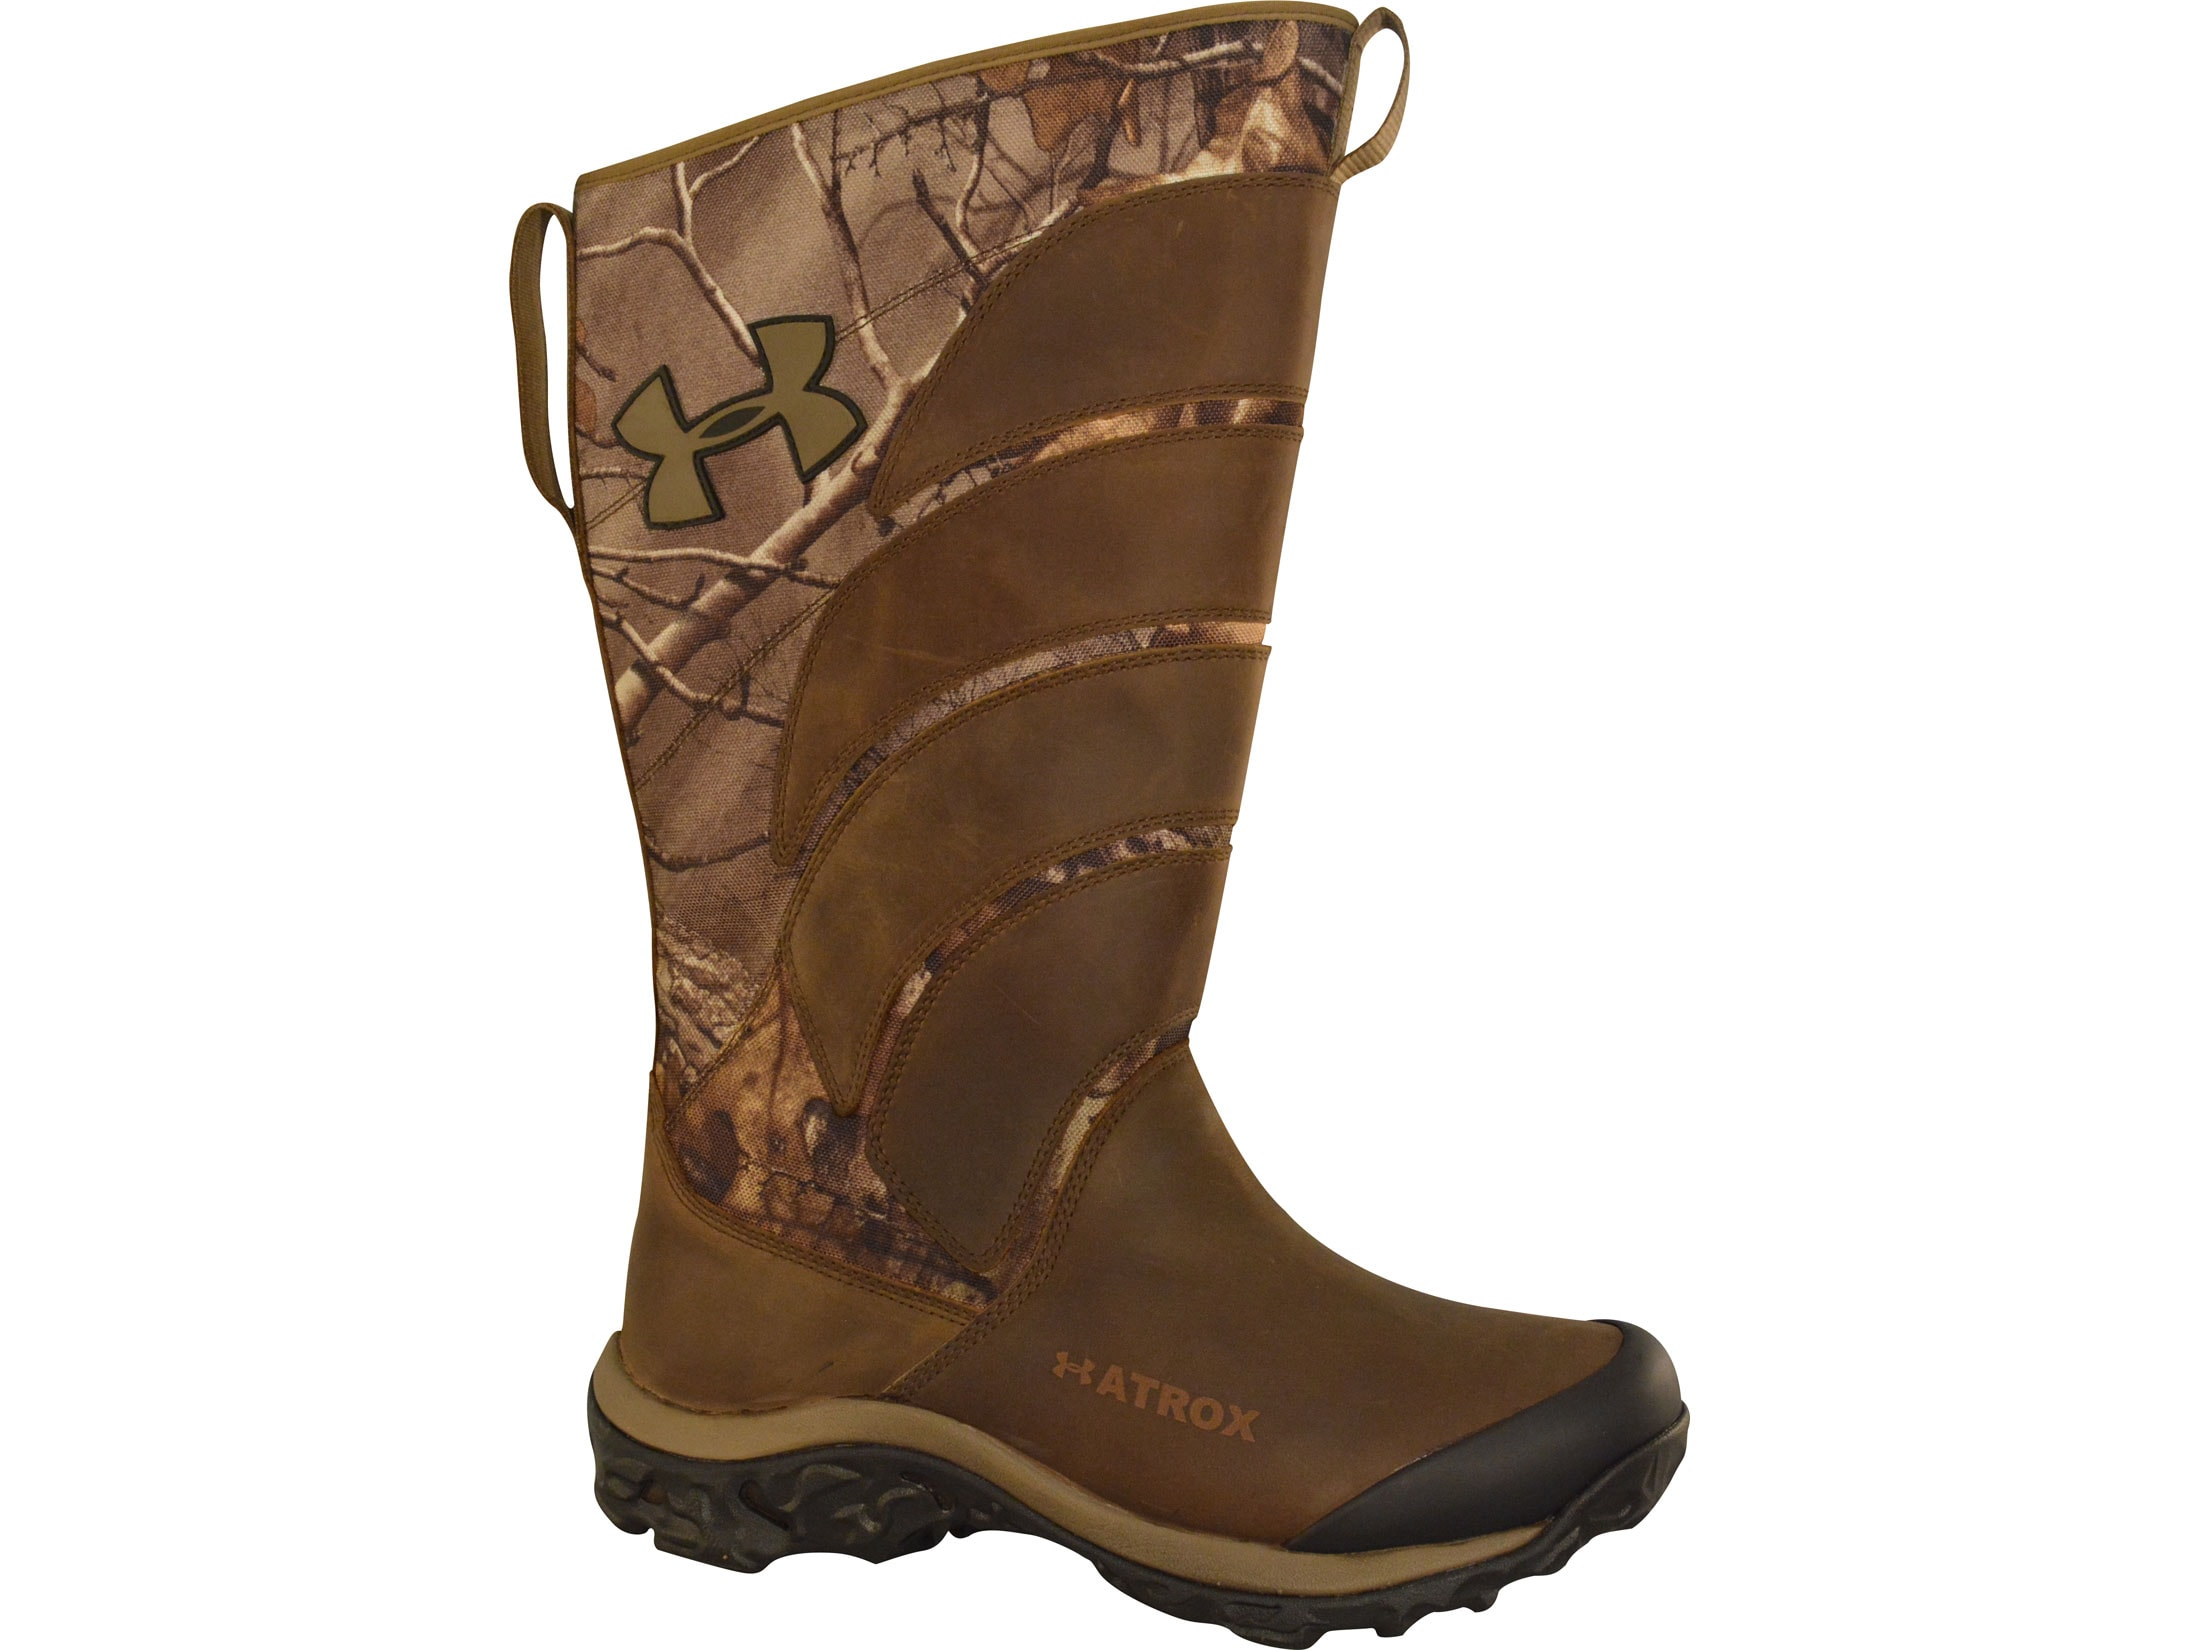 6e2730a2ef8 Under Armour UA Atrox 16 Waterproof Scent Control Snake Boots Leather